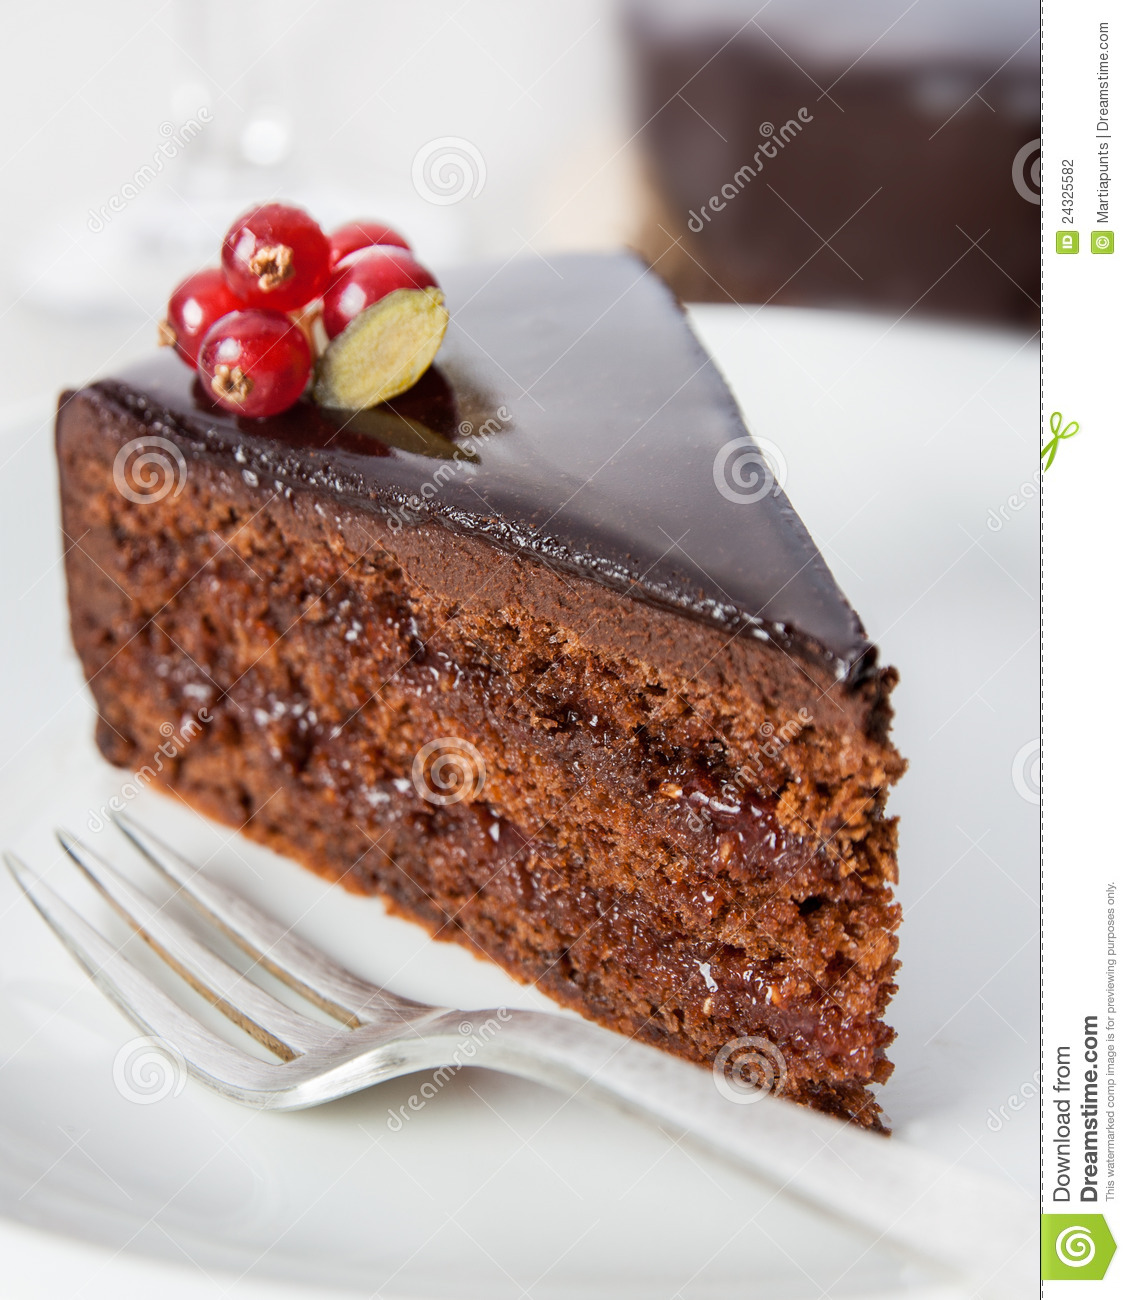 Delicious Cake Images : Delicious chocolate cake stock photo. Image of food ...